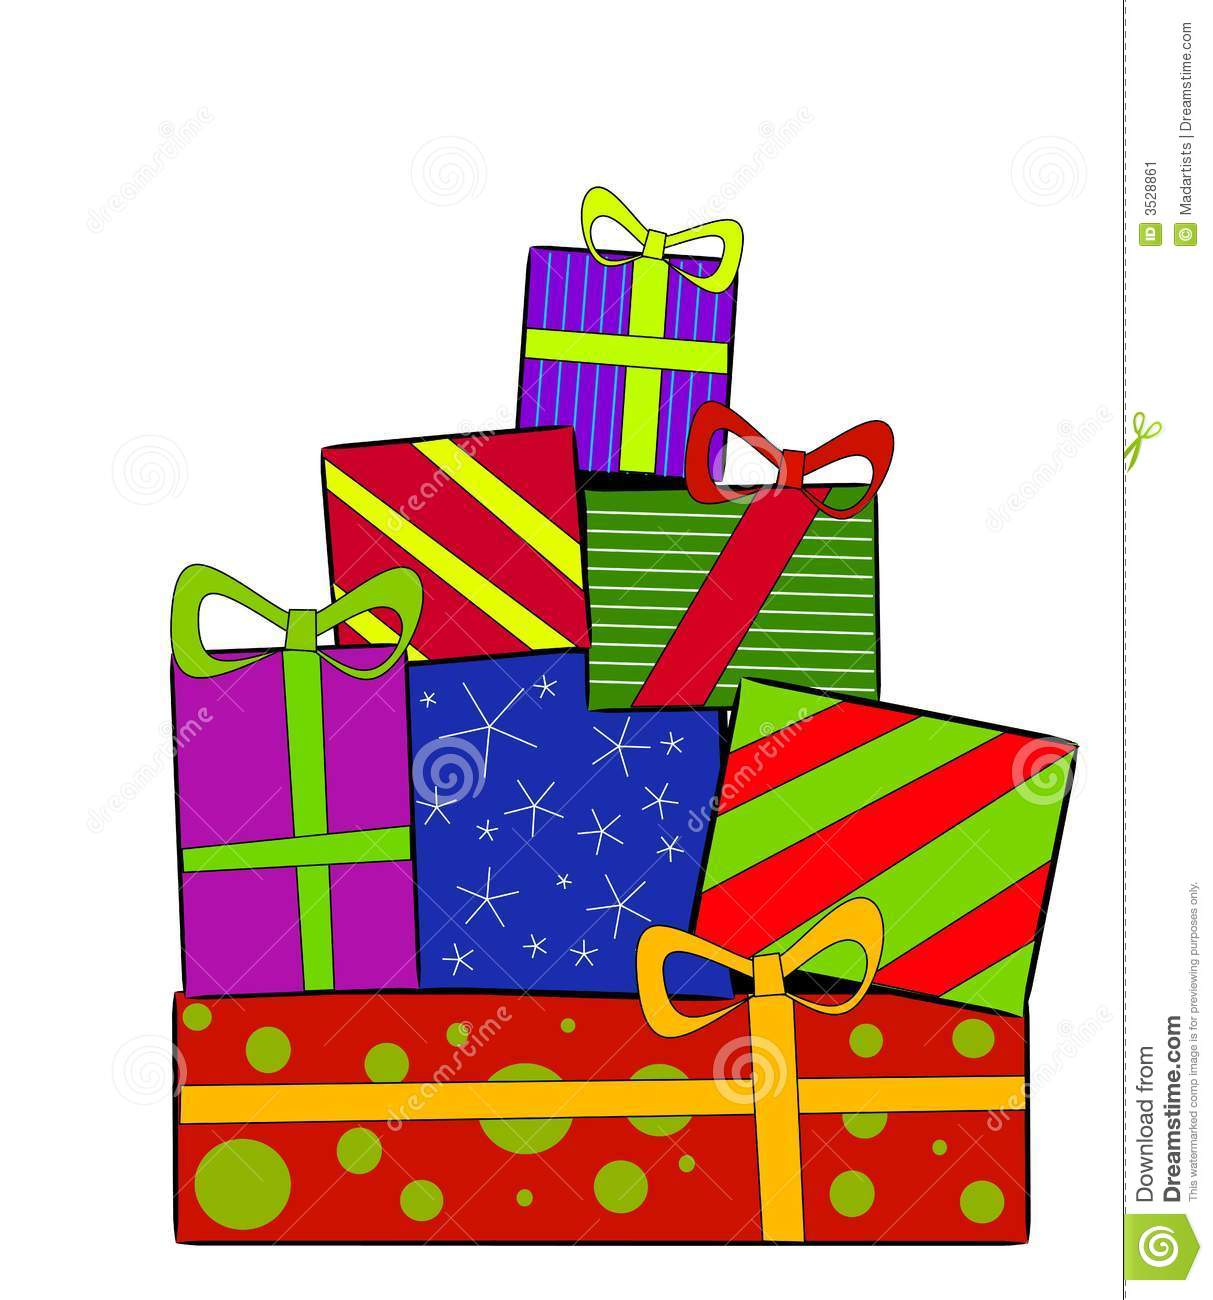 Clip Art Illustration Of A Pile Of Christmas Gifts And Presents